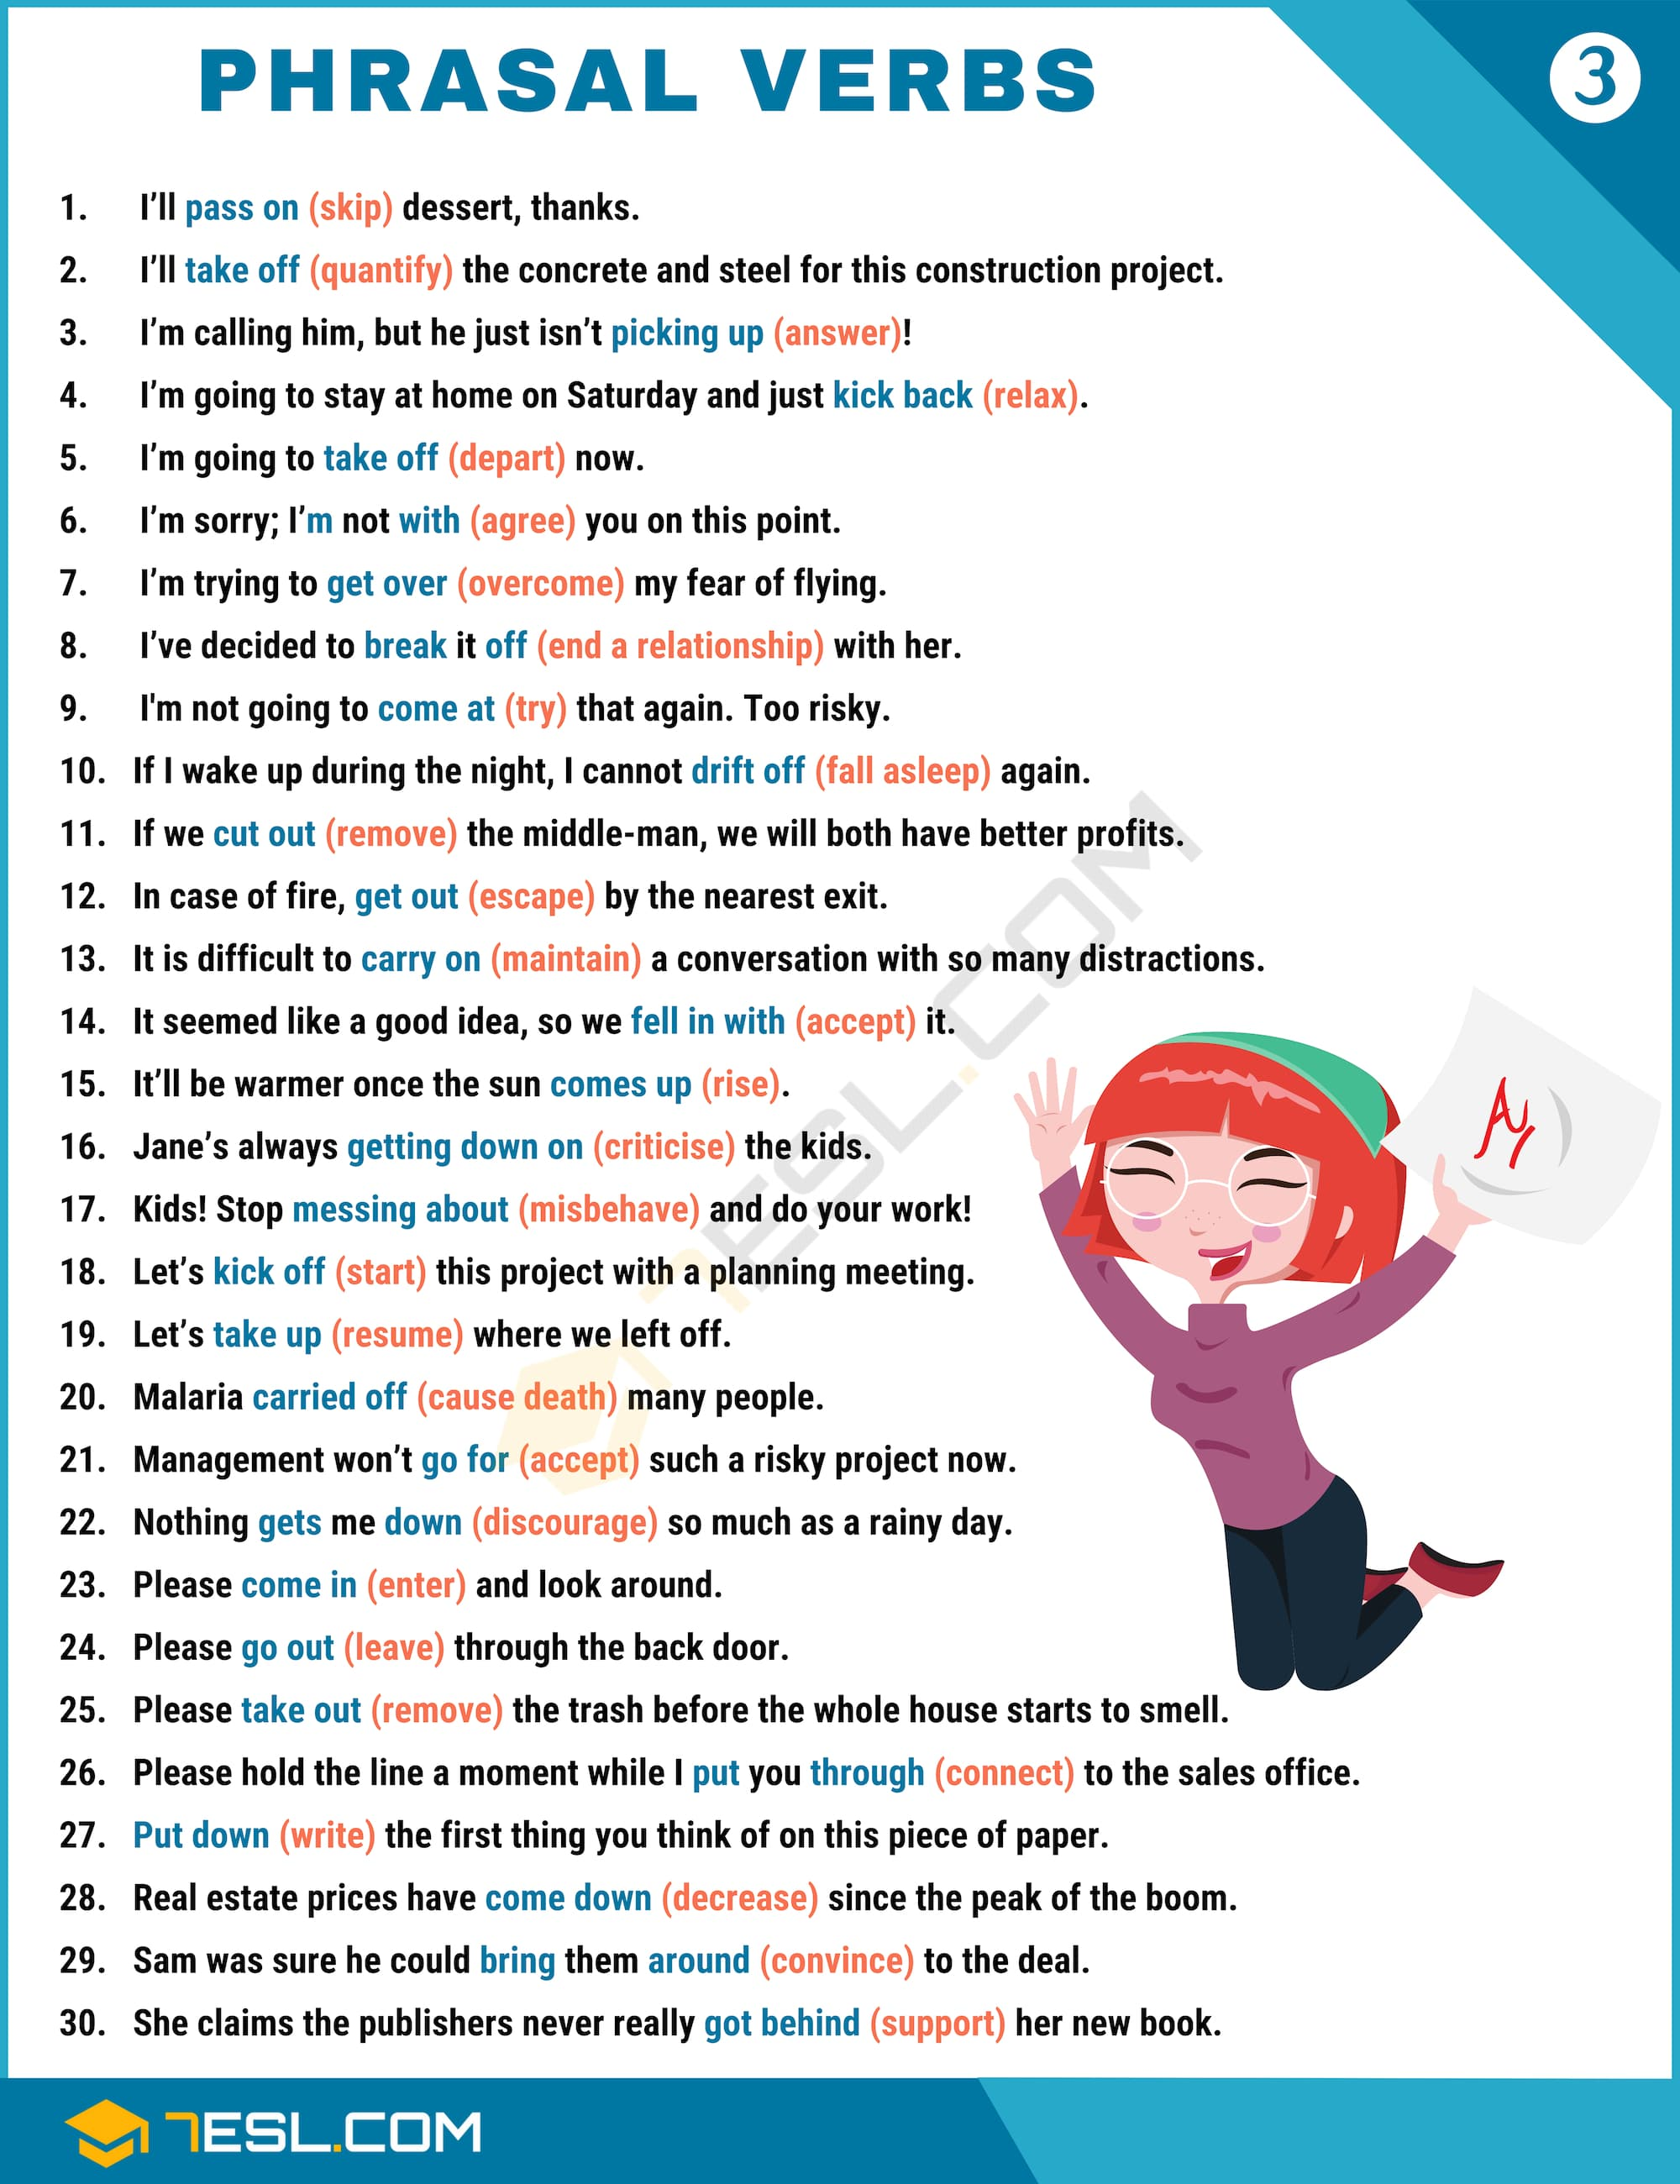 Useful Phrasal Verbs List with Example Sentences | Image 3